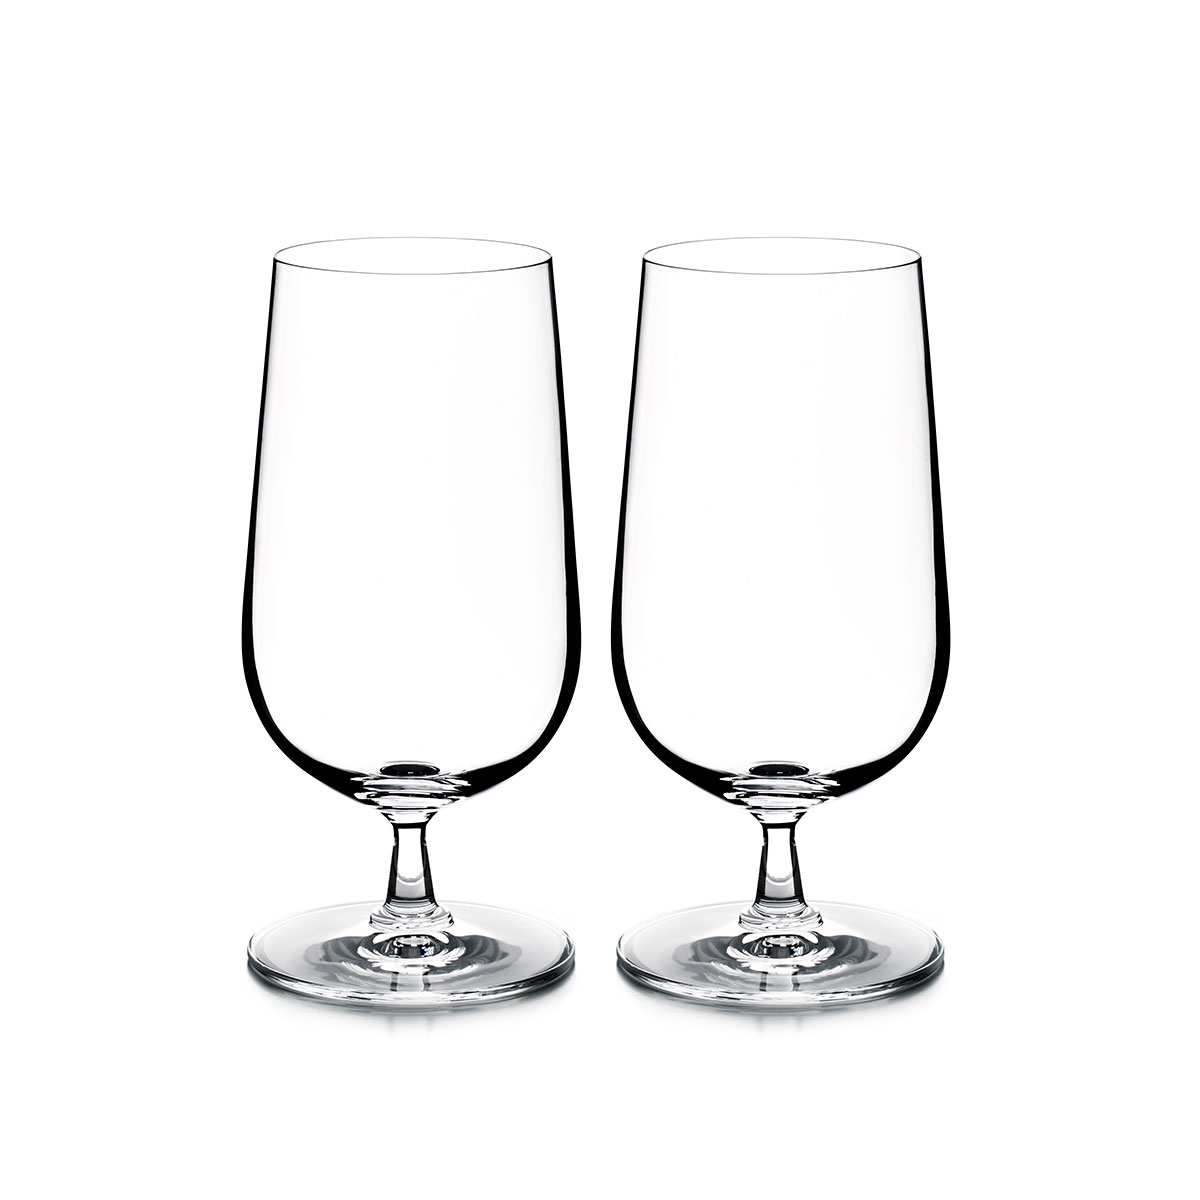 Grand Cru Ølglass 2pk 50 cl